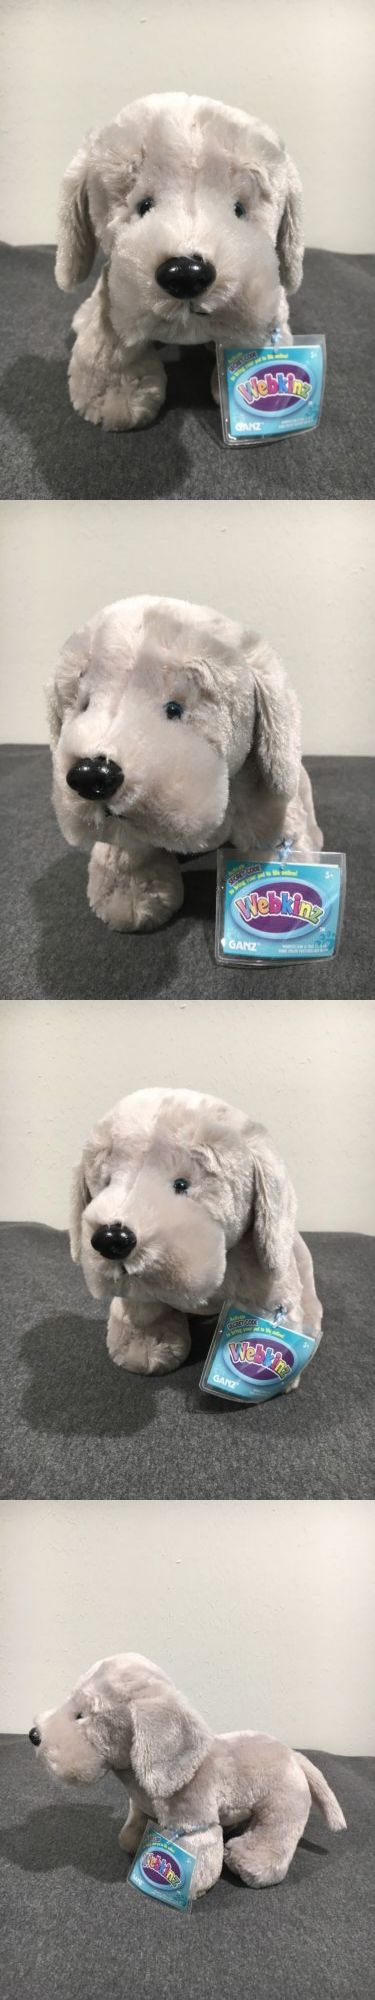 Animals 150106: Webkinz Silver Labrador Nwt Sealed Unused Code Tag (Quick To Ship) Smoke-Free -> BUY IT NOW ONLY: $44.95 on eBay!